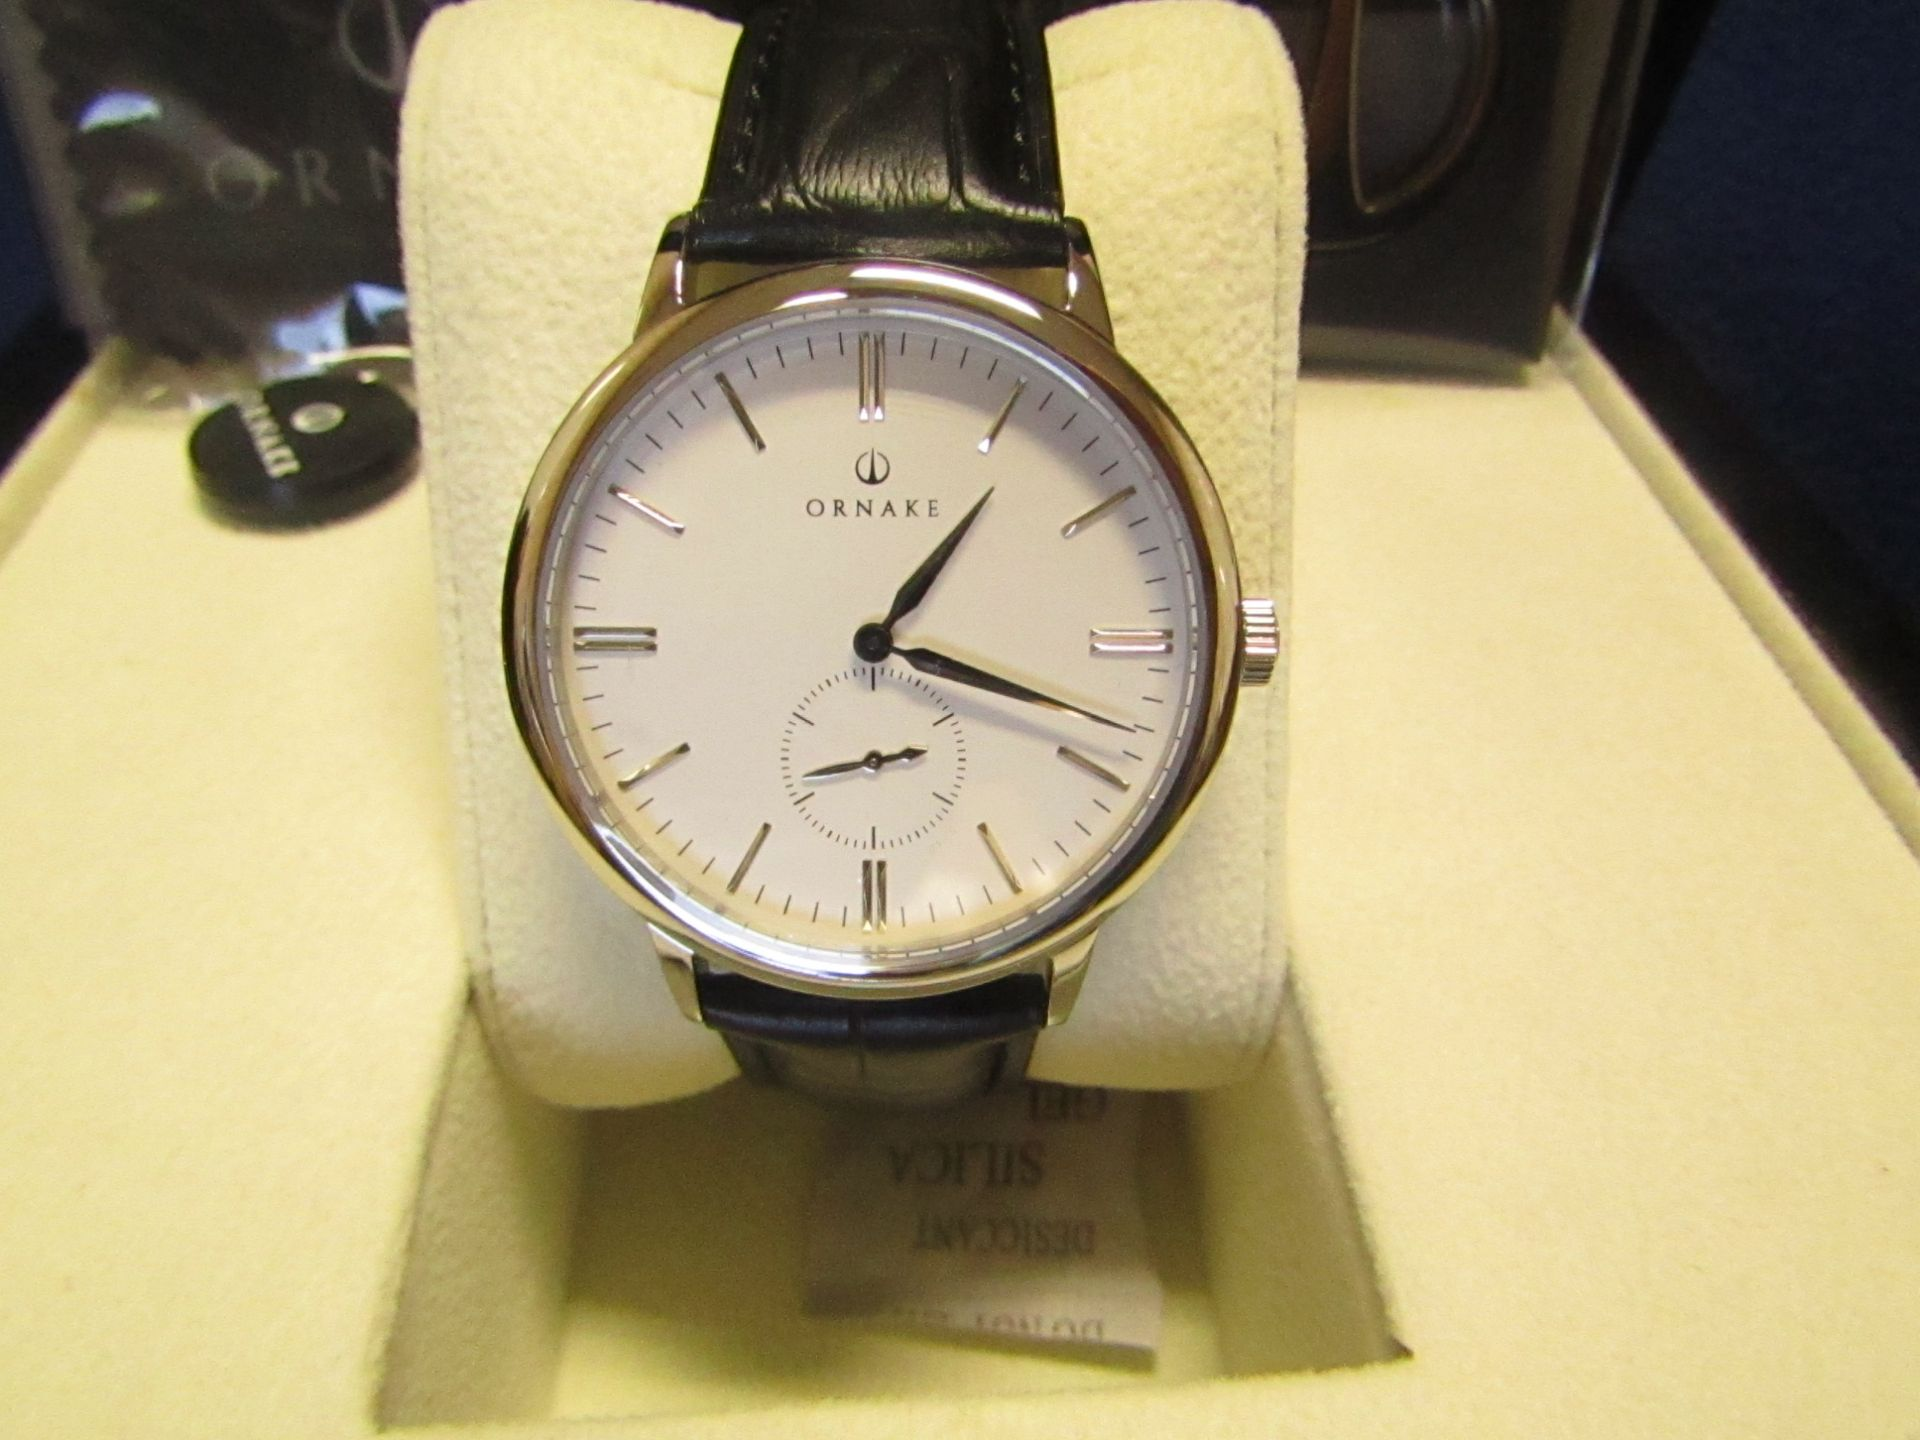 Ornake watch, miyota movement, white and Silver with black leather strap, new, Boxed and ticking. - Image 2 of 2